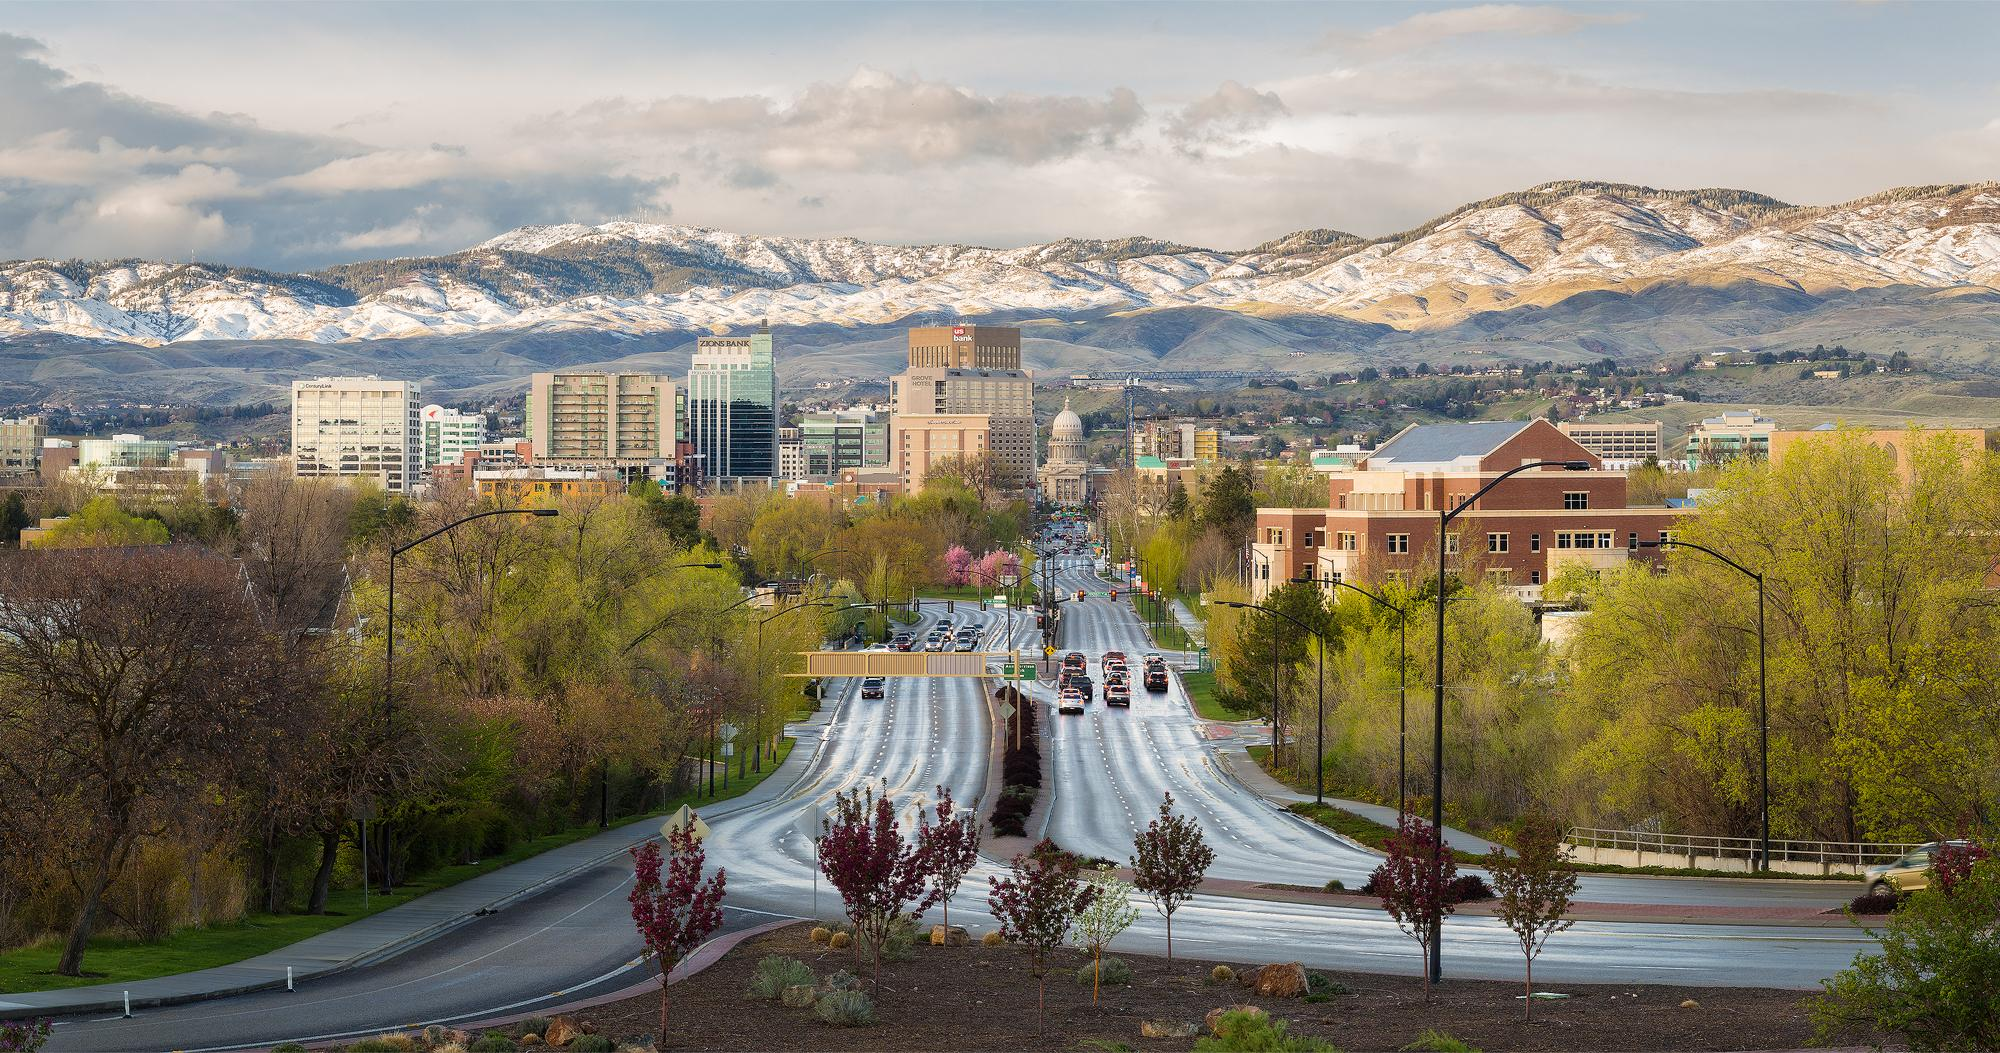 April Showers in Boise